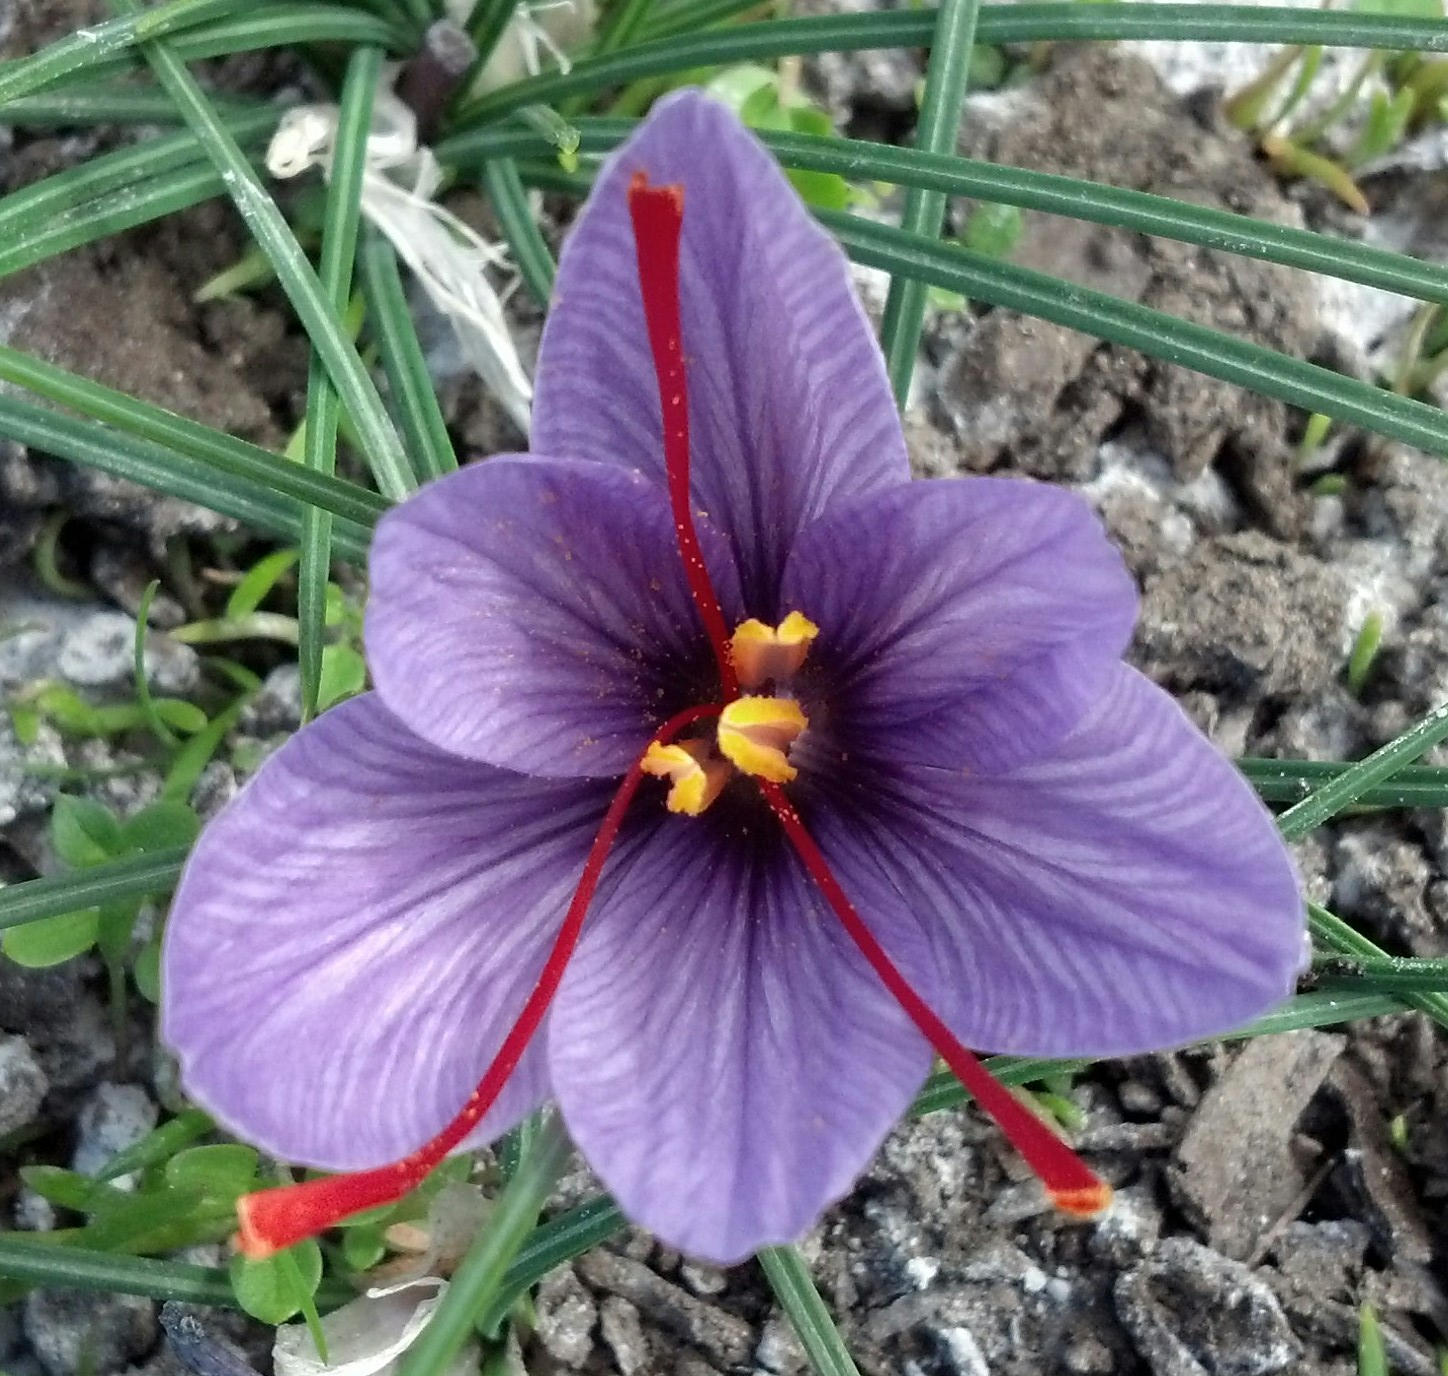 A saffron crocus in full bloom at Phocas Farms. Photo courtesy Phocas Farms.